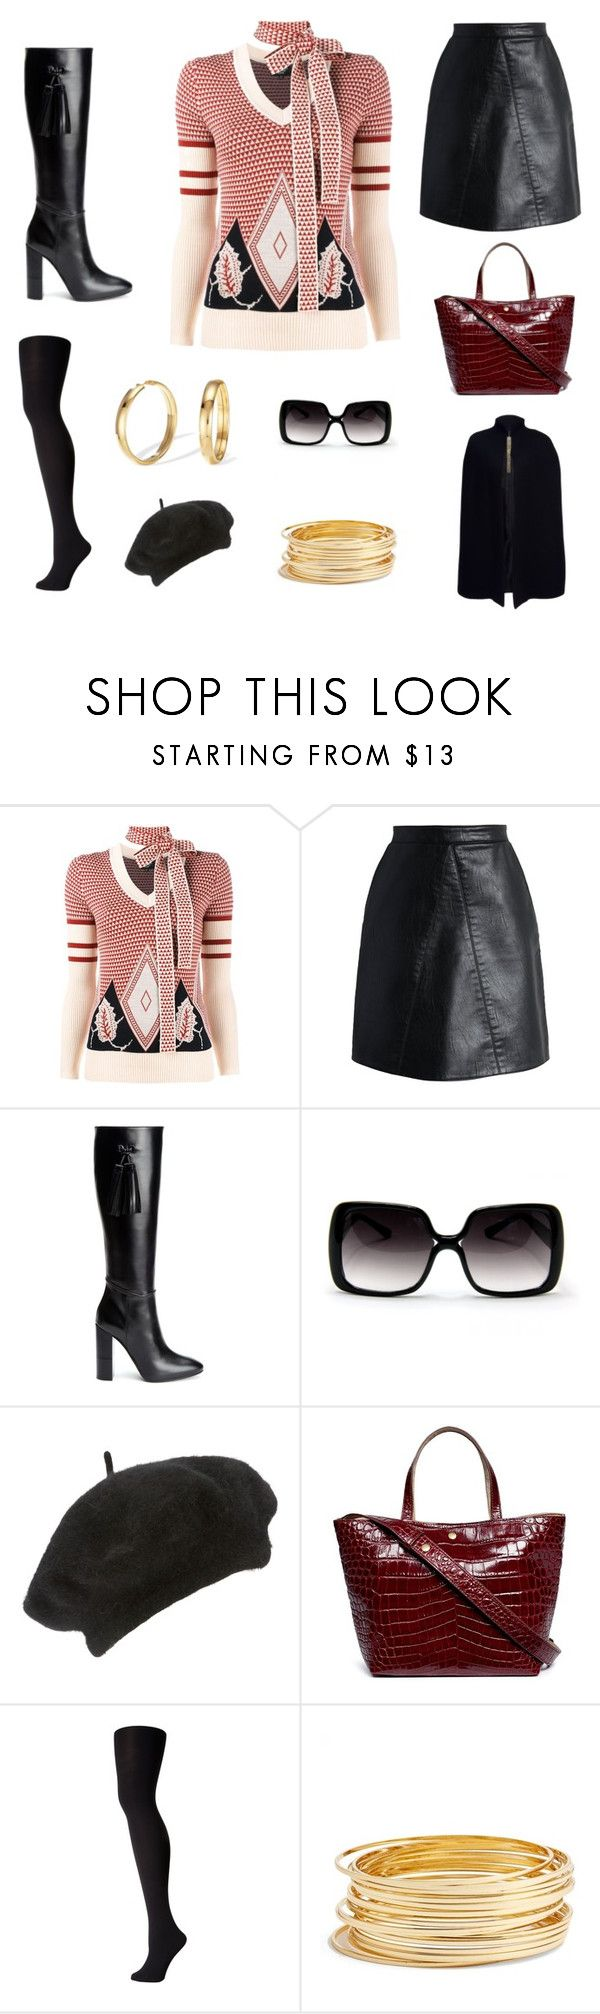 """""""shopping trip"""" by edith-a-giles ❤ liked on Polyvore featuring Creatures of the Wind, Chicwish, Aquatalia by Marvin K., John Lewis, Elizabeth and James, Falke, Argento Vivo and Lanvin"""